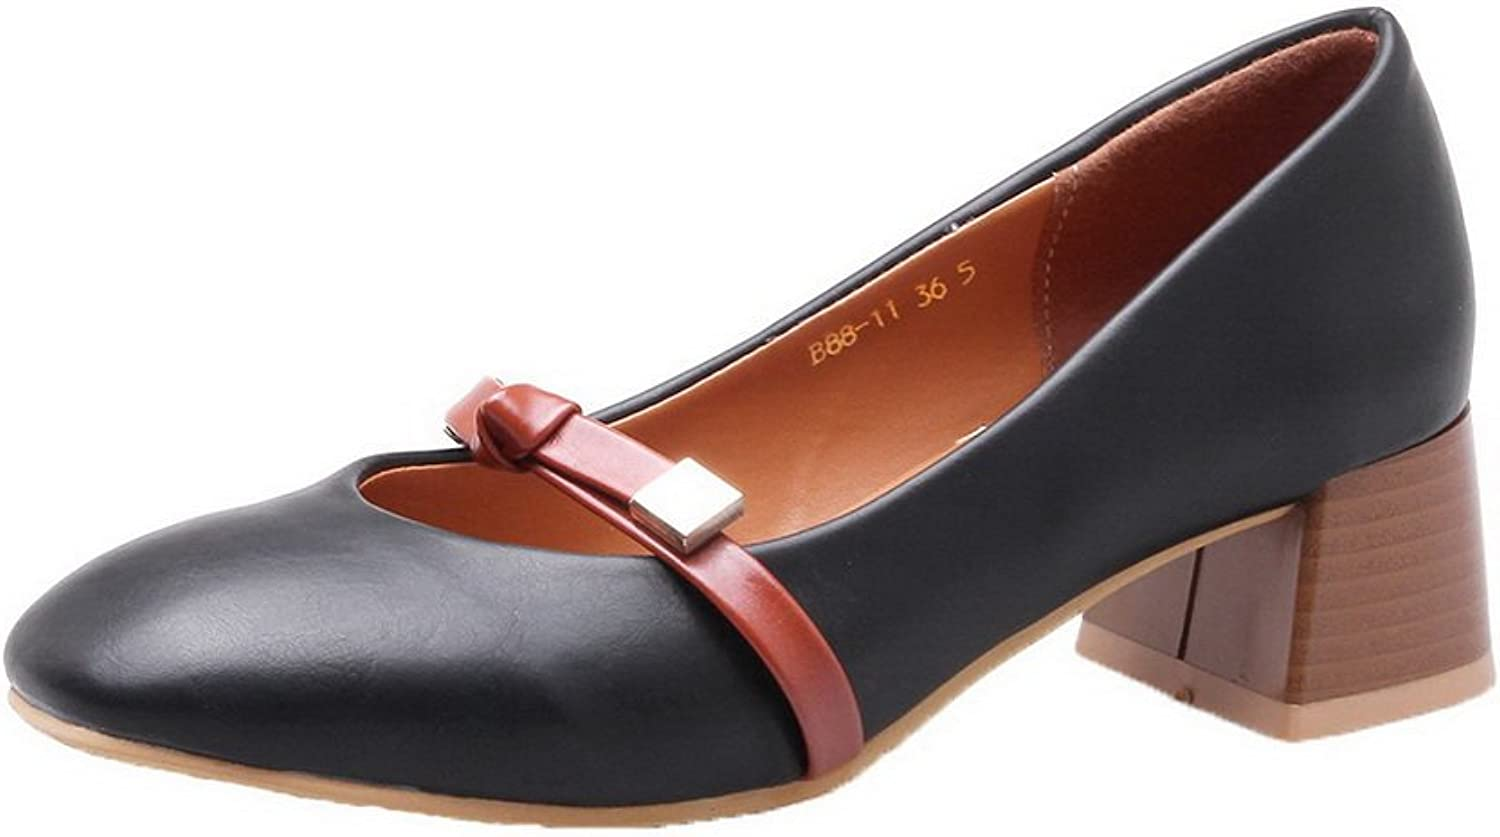 WeiPoot Women's Kitten-Heels PU Solid Pull-On Square Closed Toe Pumps-shoes, Black, 37